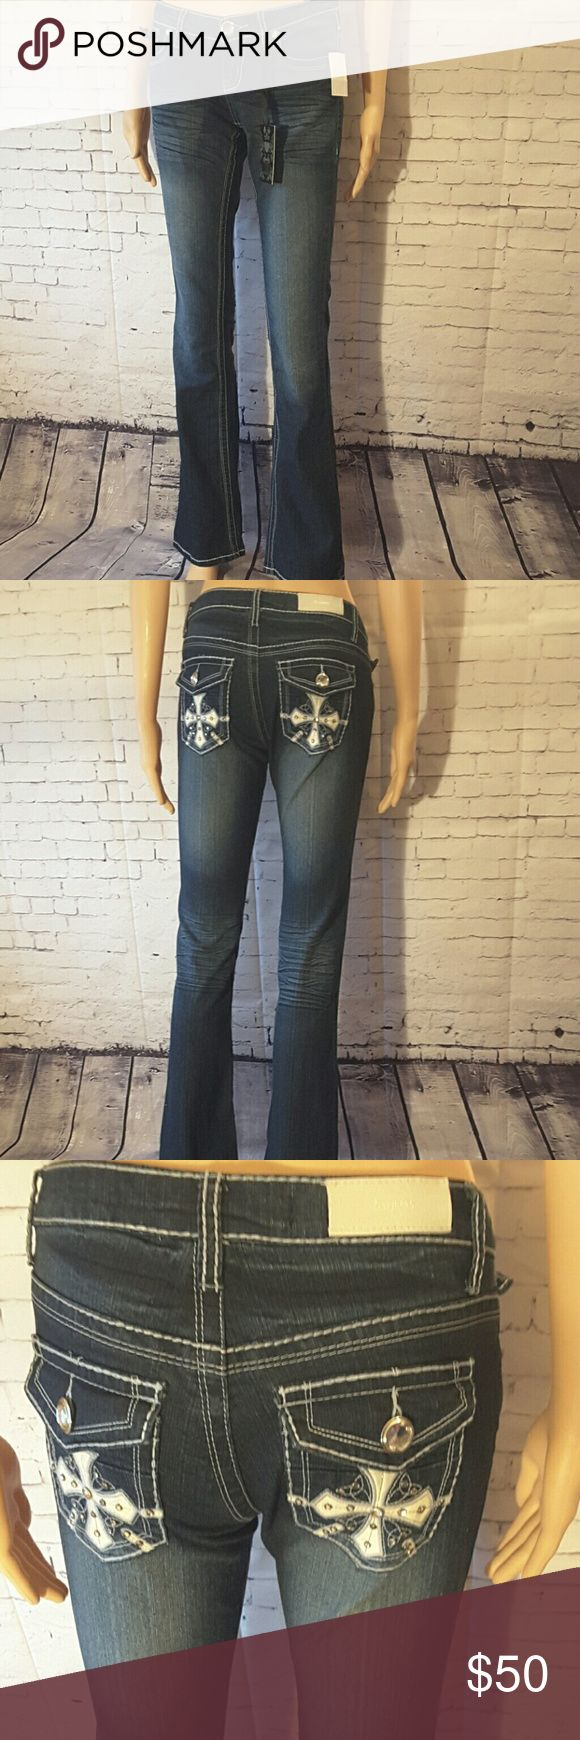 "🆕ZCO JEANS ZCO JEANS PREMIUM DENIM size 5 NWT it has beautiful back pocket details and a big bling front button, 14"" flat waist, 7"" rise,  31"" inseam ZCO Jeans"